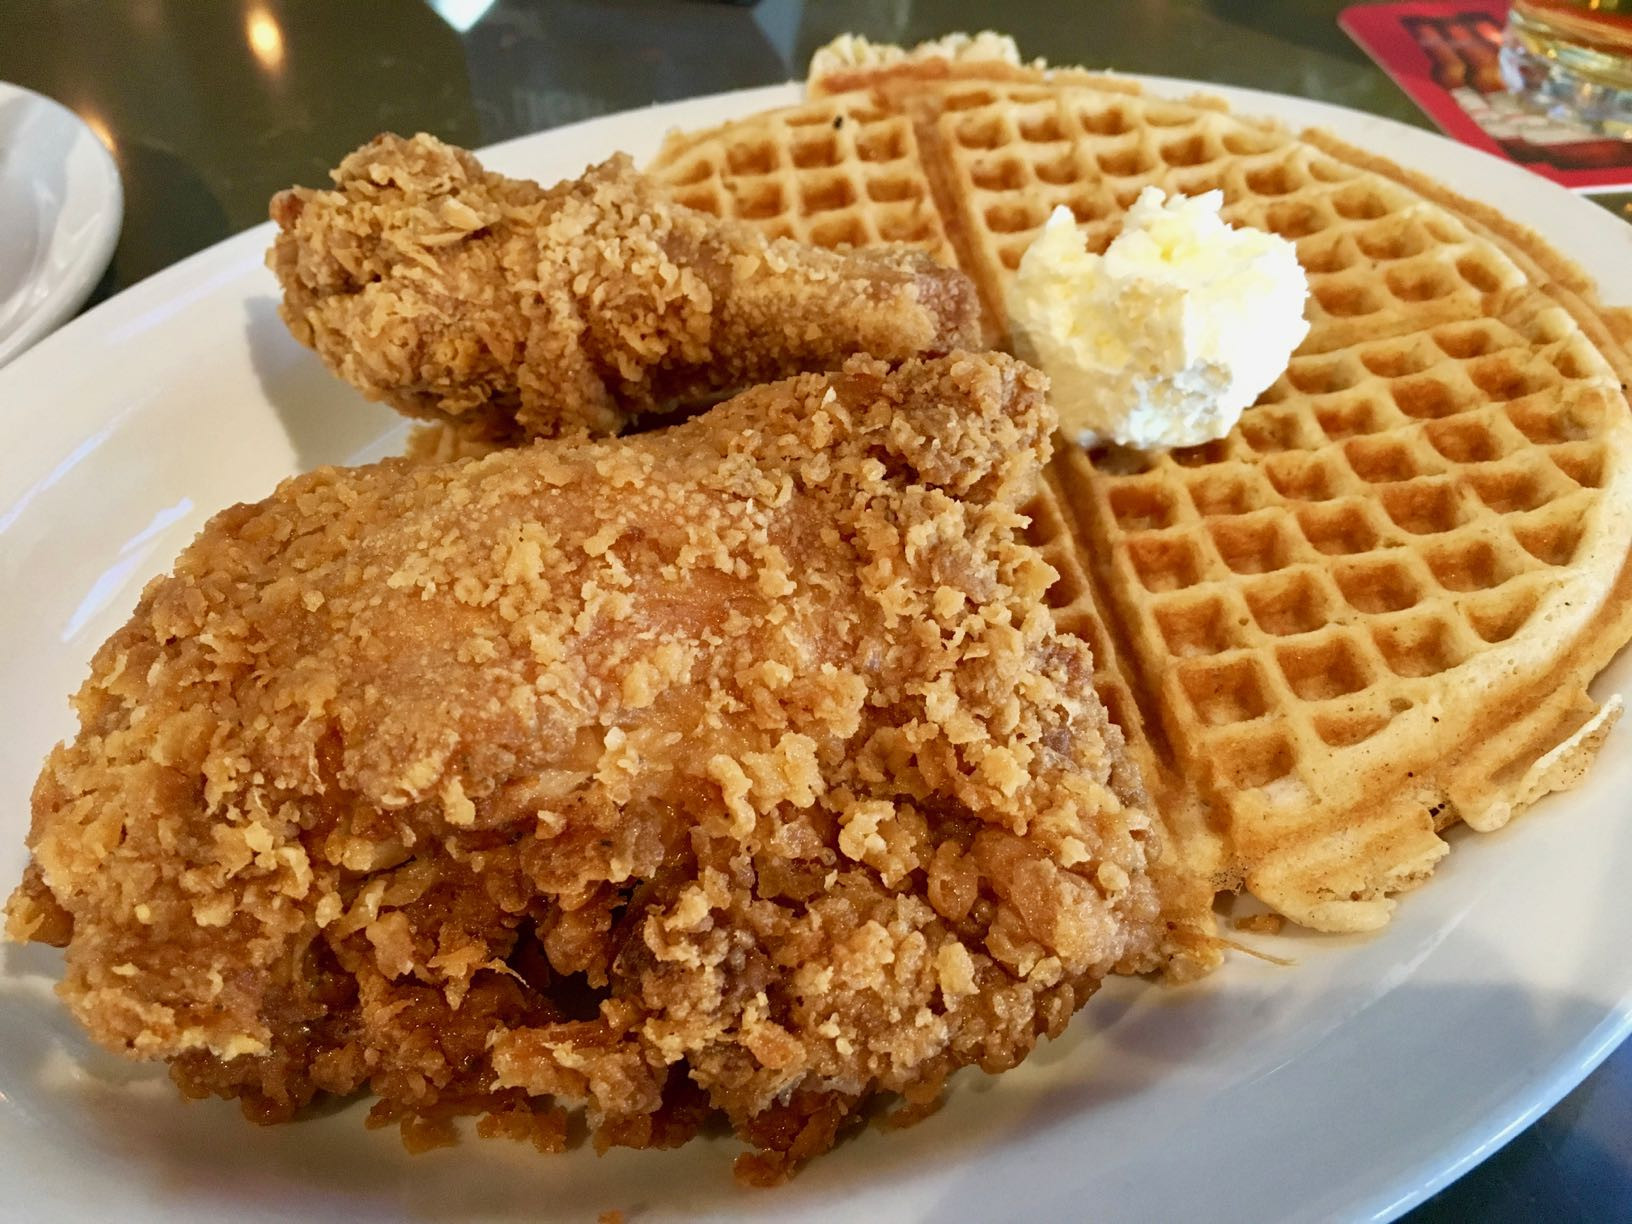 Lolo Chicken And Waffles  Lo Lo's Chicken and Waffles – Bite and Switch